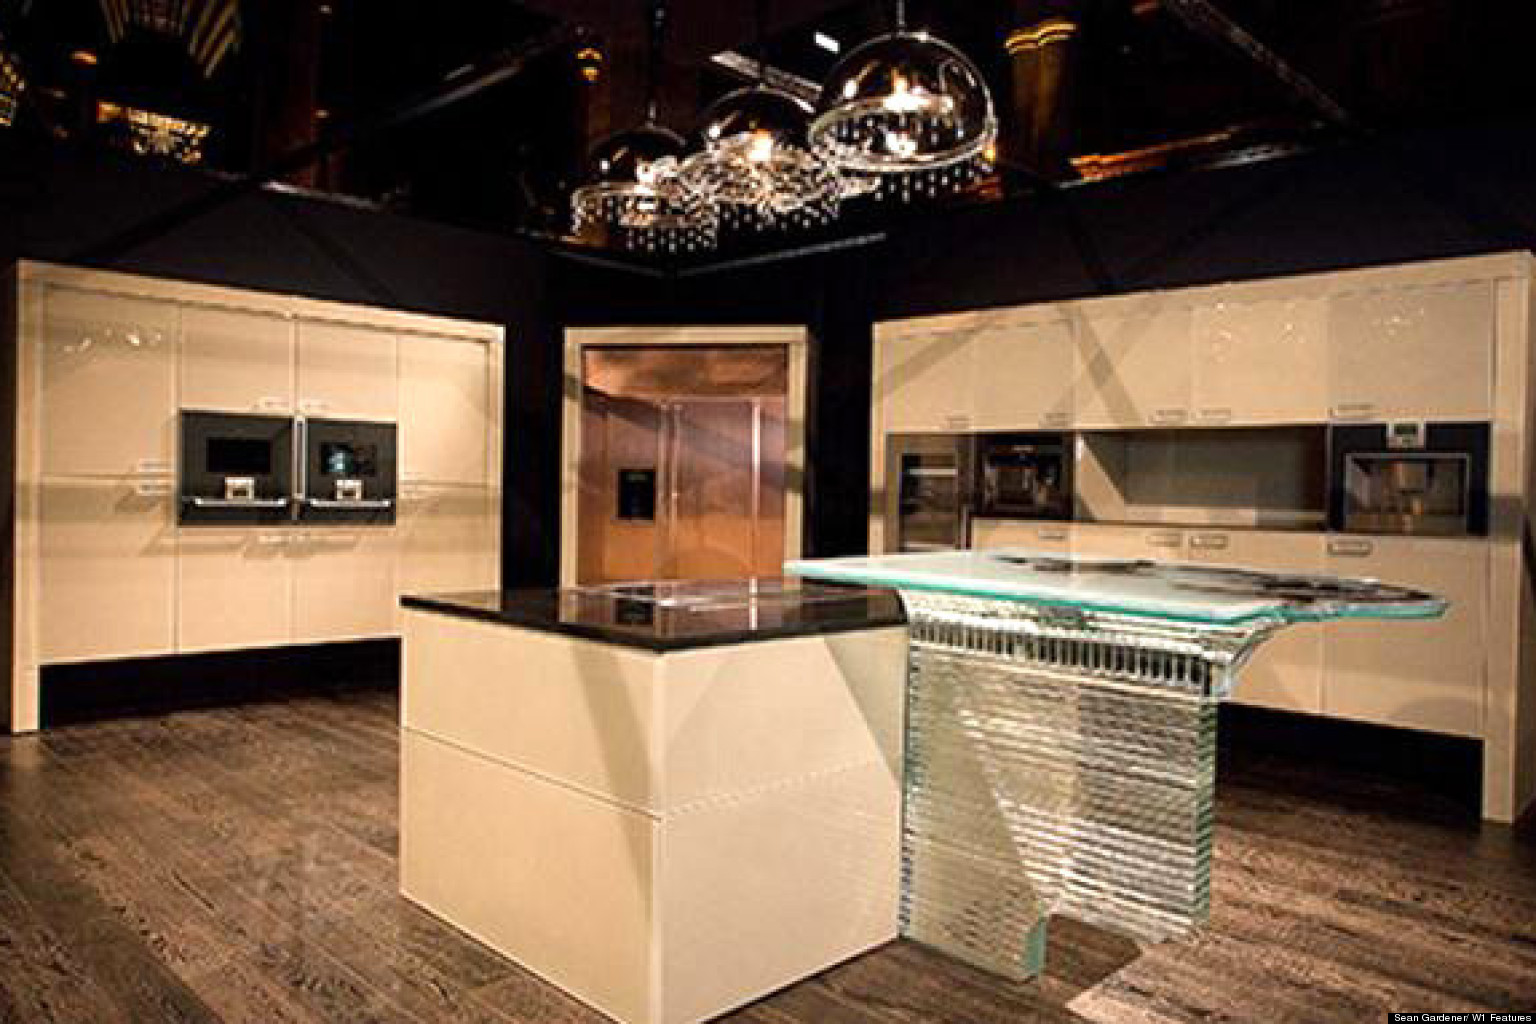 The Most Expensive Kitchen Costs Million PHOTO HuffPost - Expensive kitchens